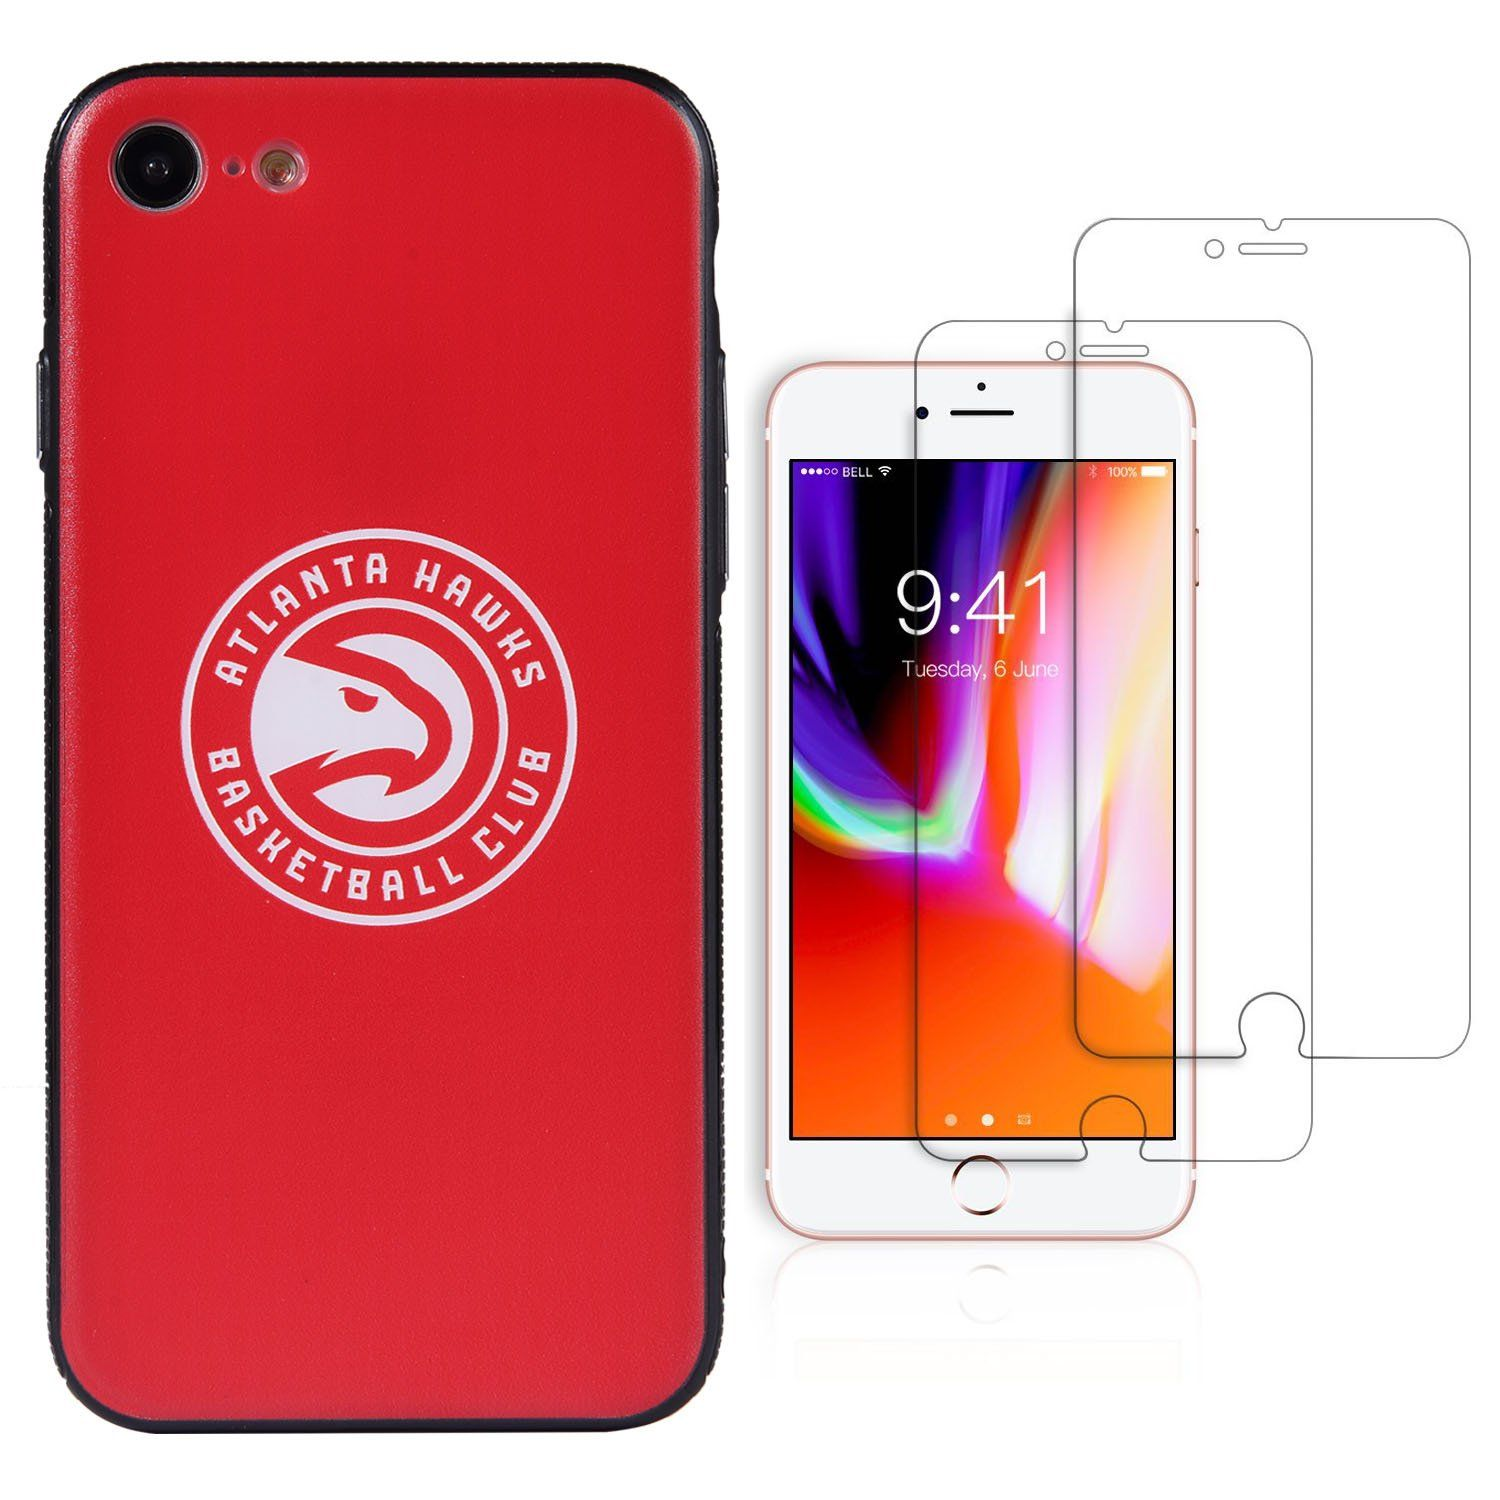 The kit includes 1 piece NBA Team Logo iPhone 7/8 case